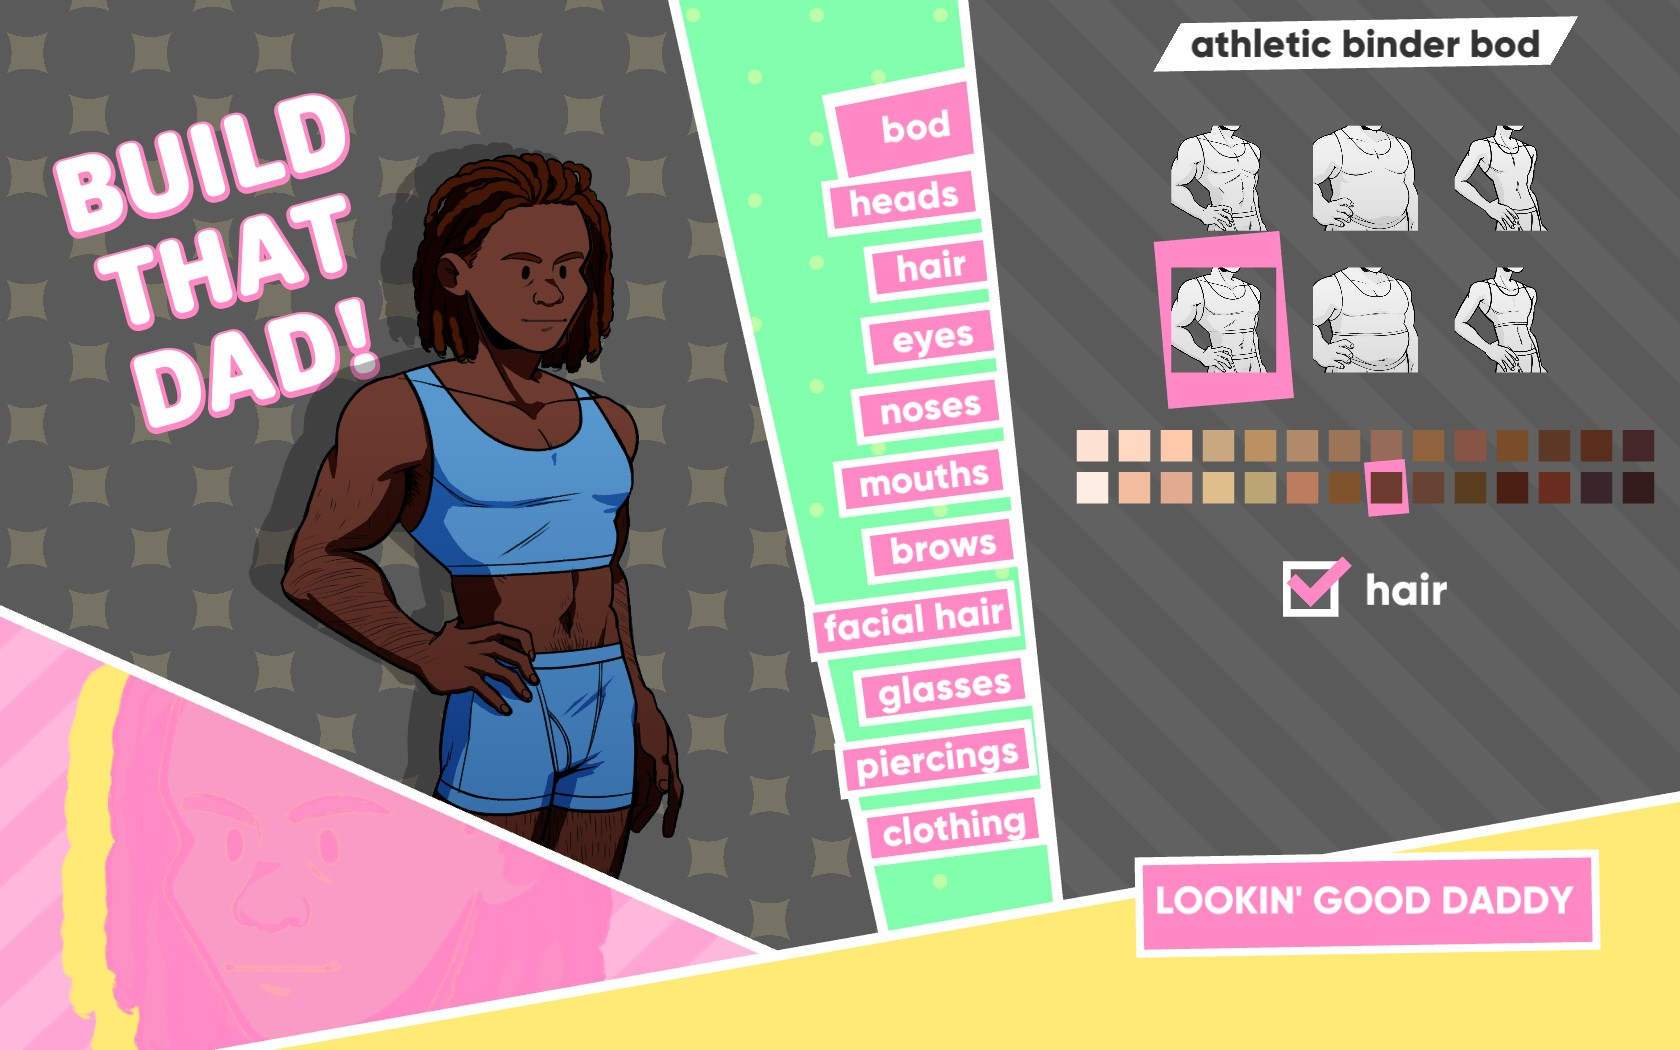 A masculine figure on a character creator, which says, 'Build that dad!' Options are: bod, heads, hair, eyes, noses, mouths, brows, facial hair, glasses, piercings, and clothing. 'Bod' is selected, with six image options, many colour options, a checkbox for 'hair', and the label 'athletic binder bod'.